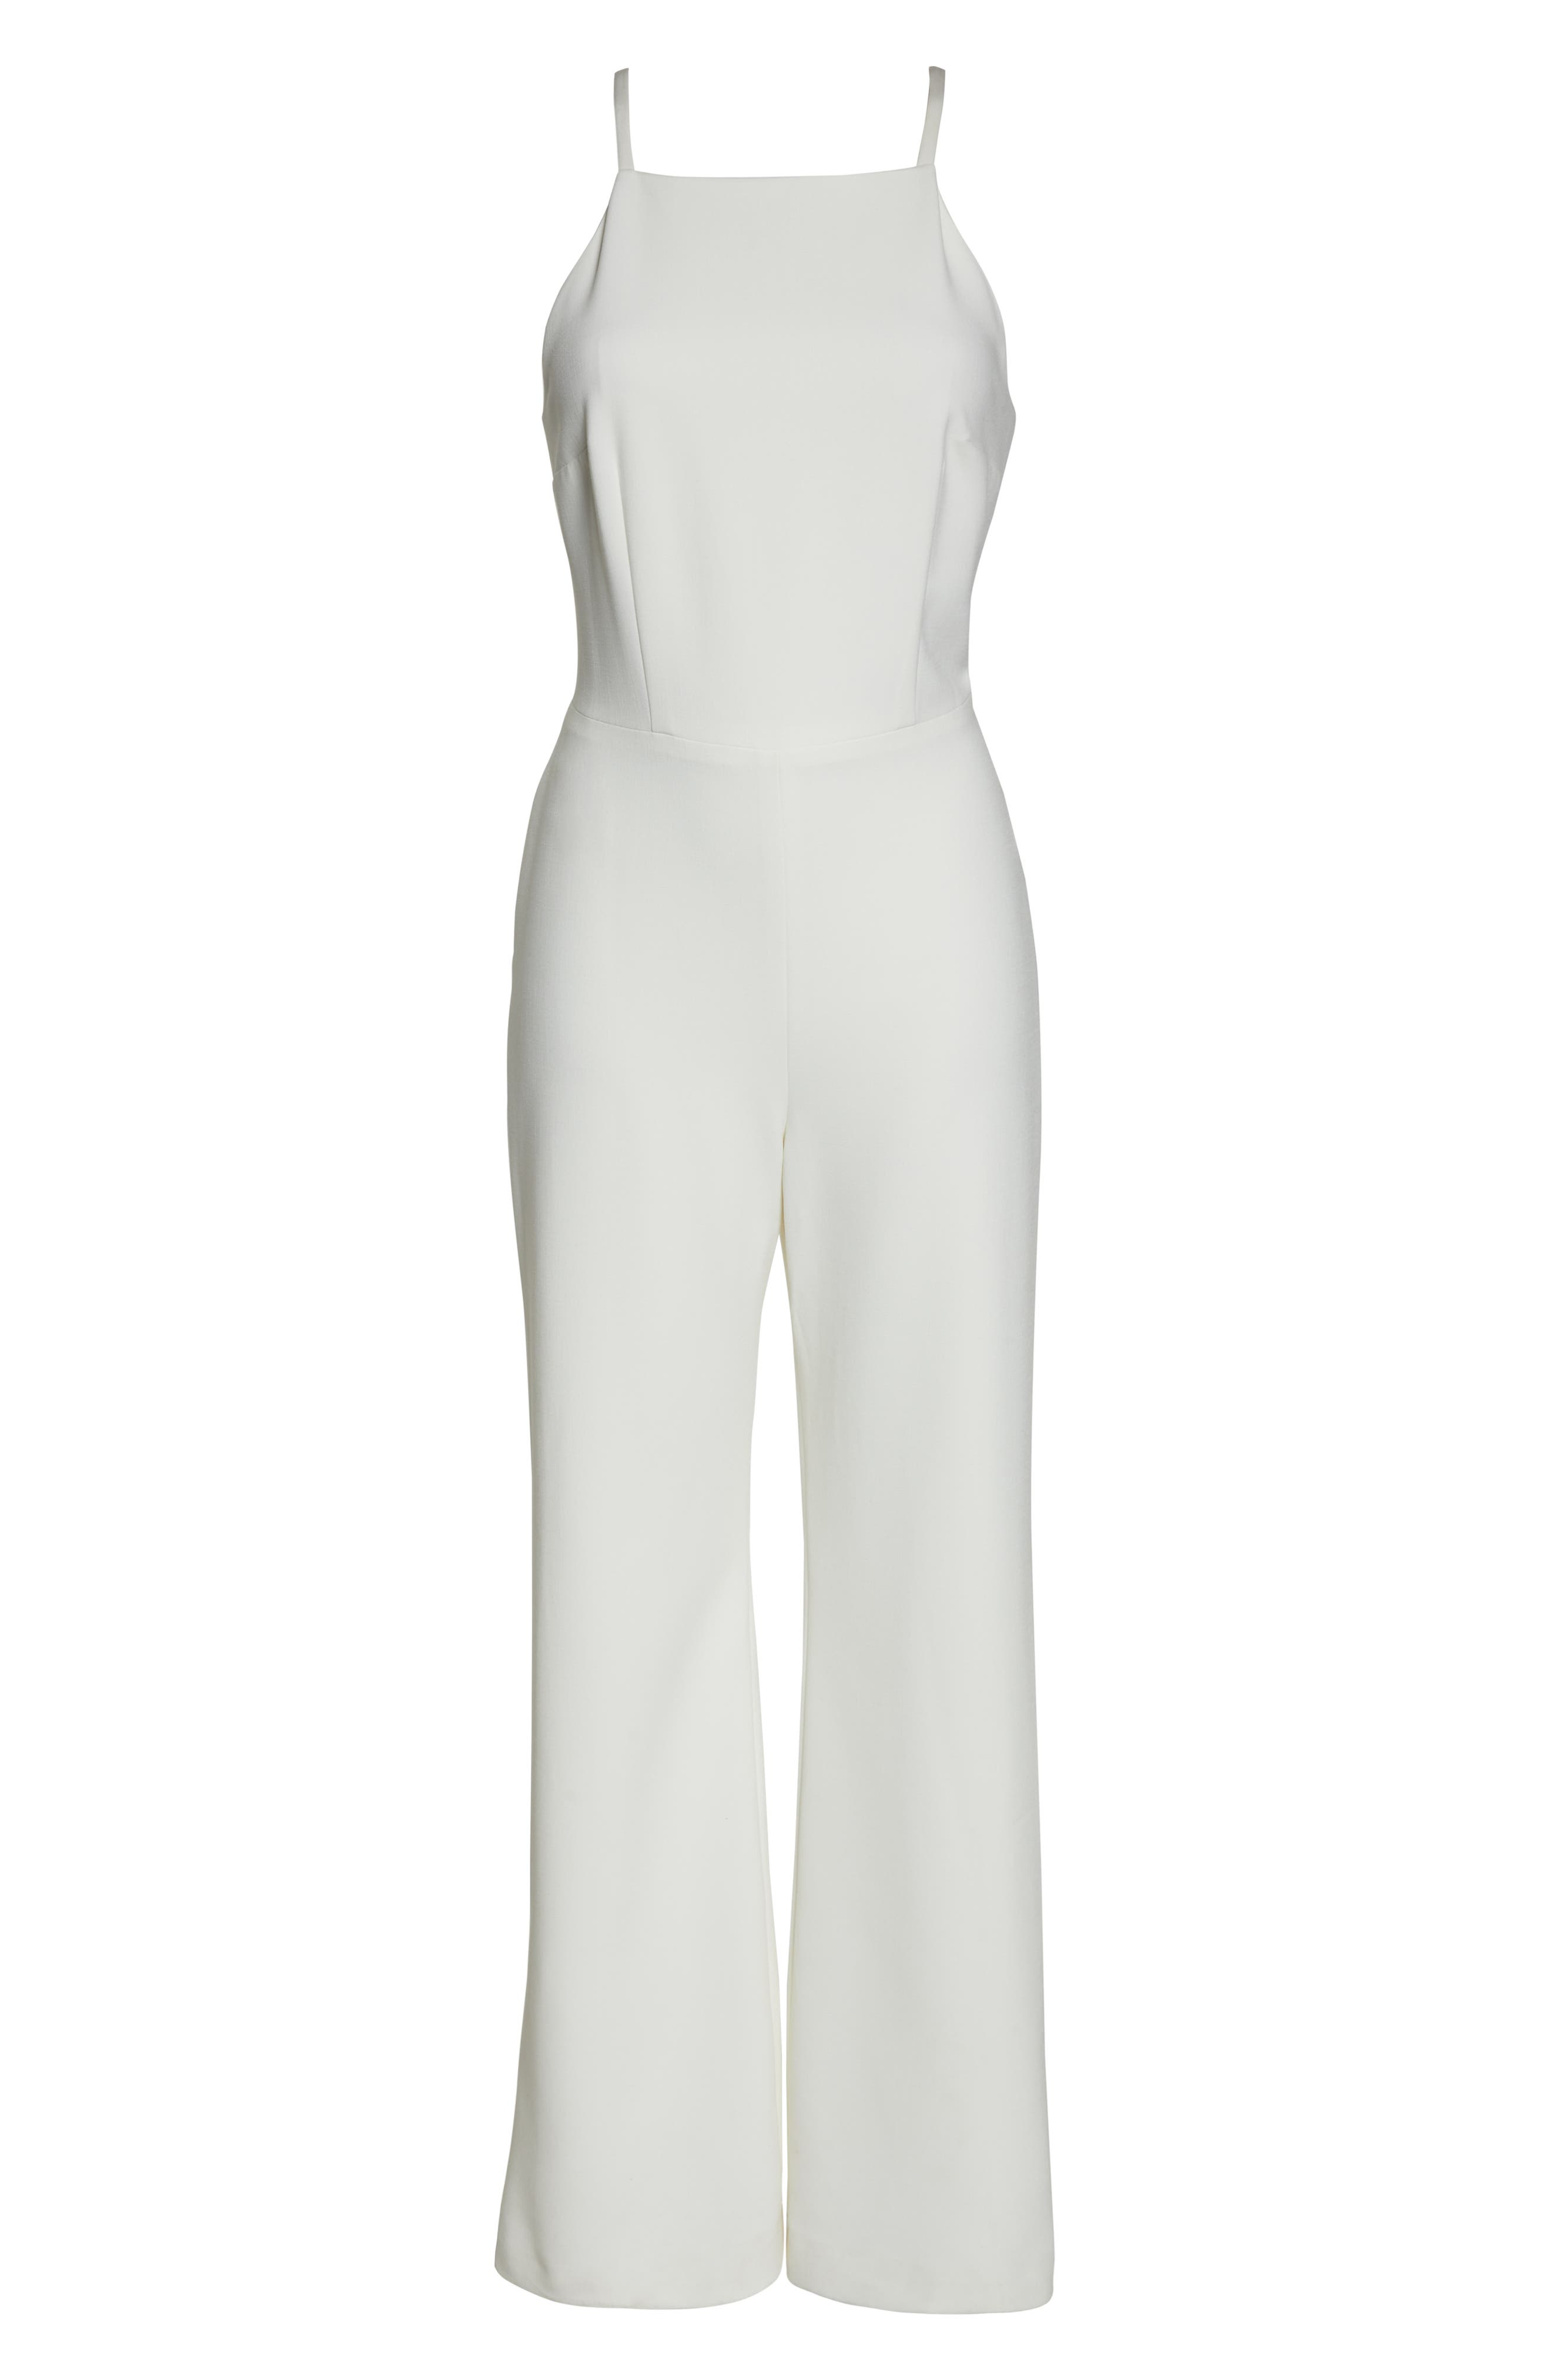 Whisper Halter Neck Jumpsuit,                             Alternate thumbnail 7, color,                             107